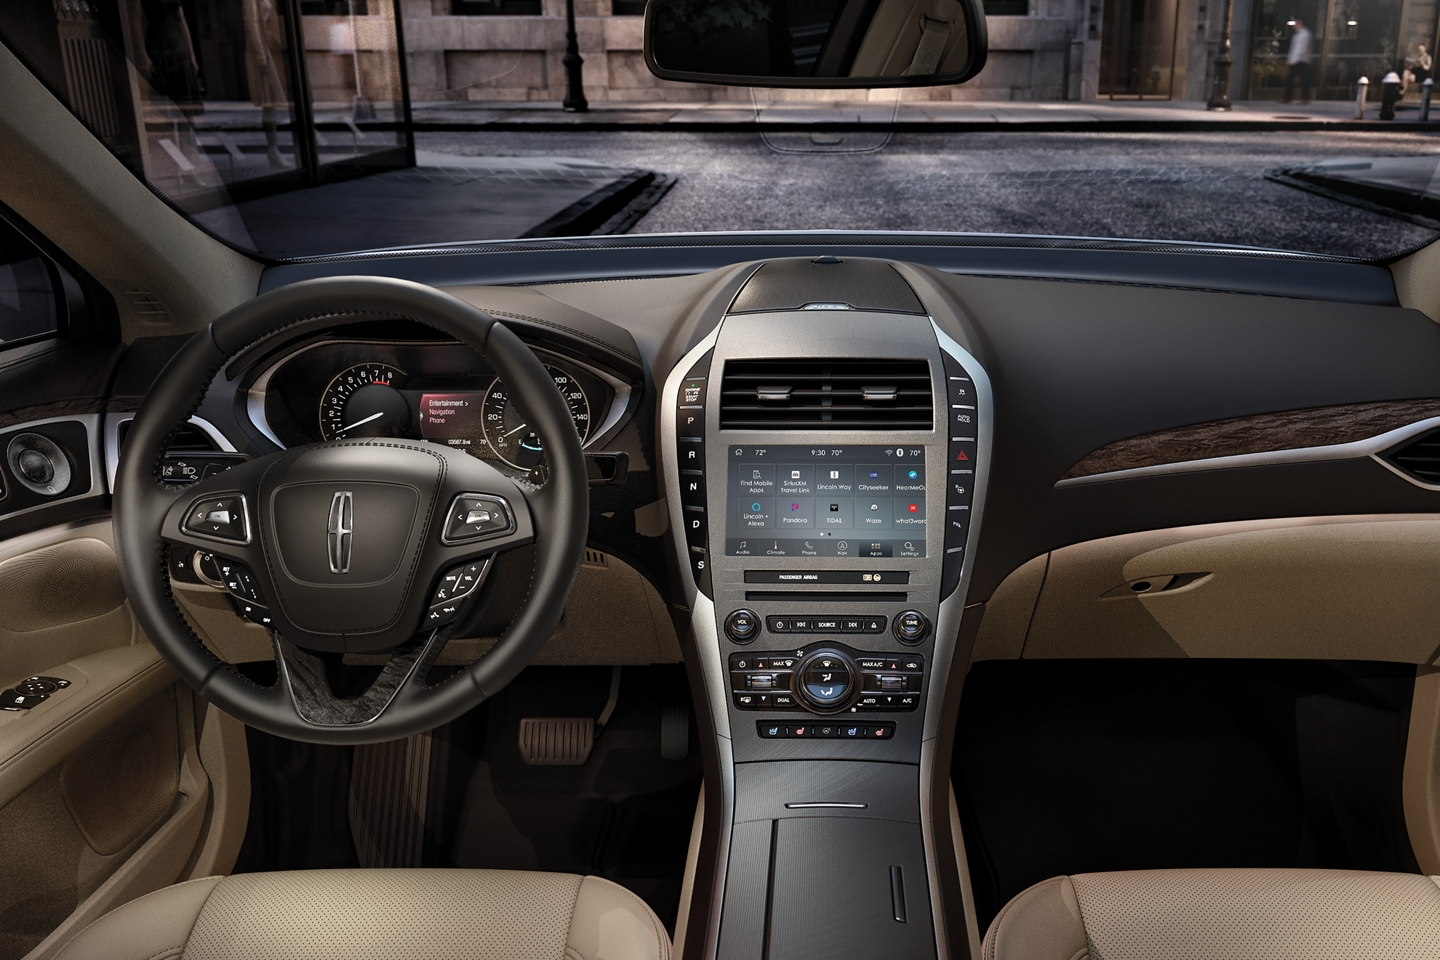 Touchscreen display inside the 2020 Lincoln MKZ